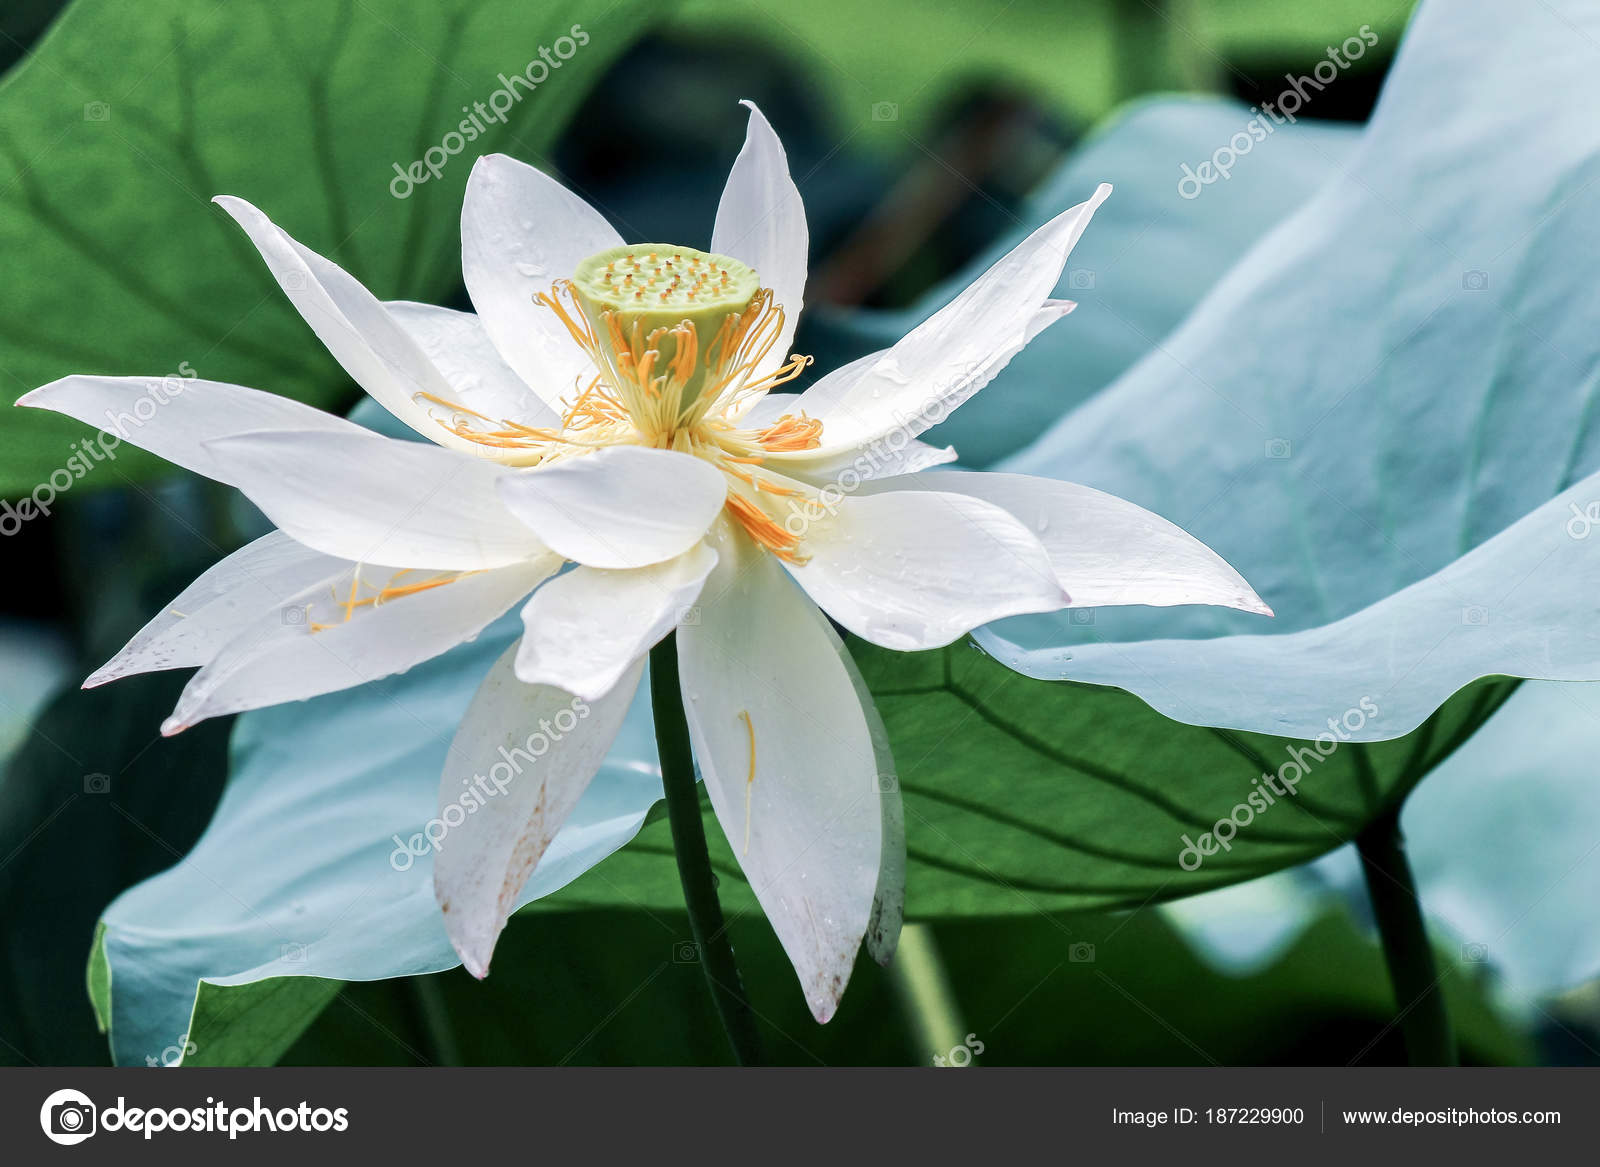 White Lotus Flower Green Leaves Stock Photo C Ccelia7280 187229900